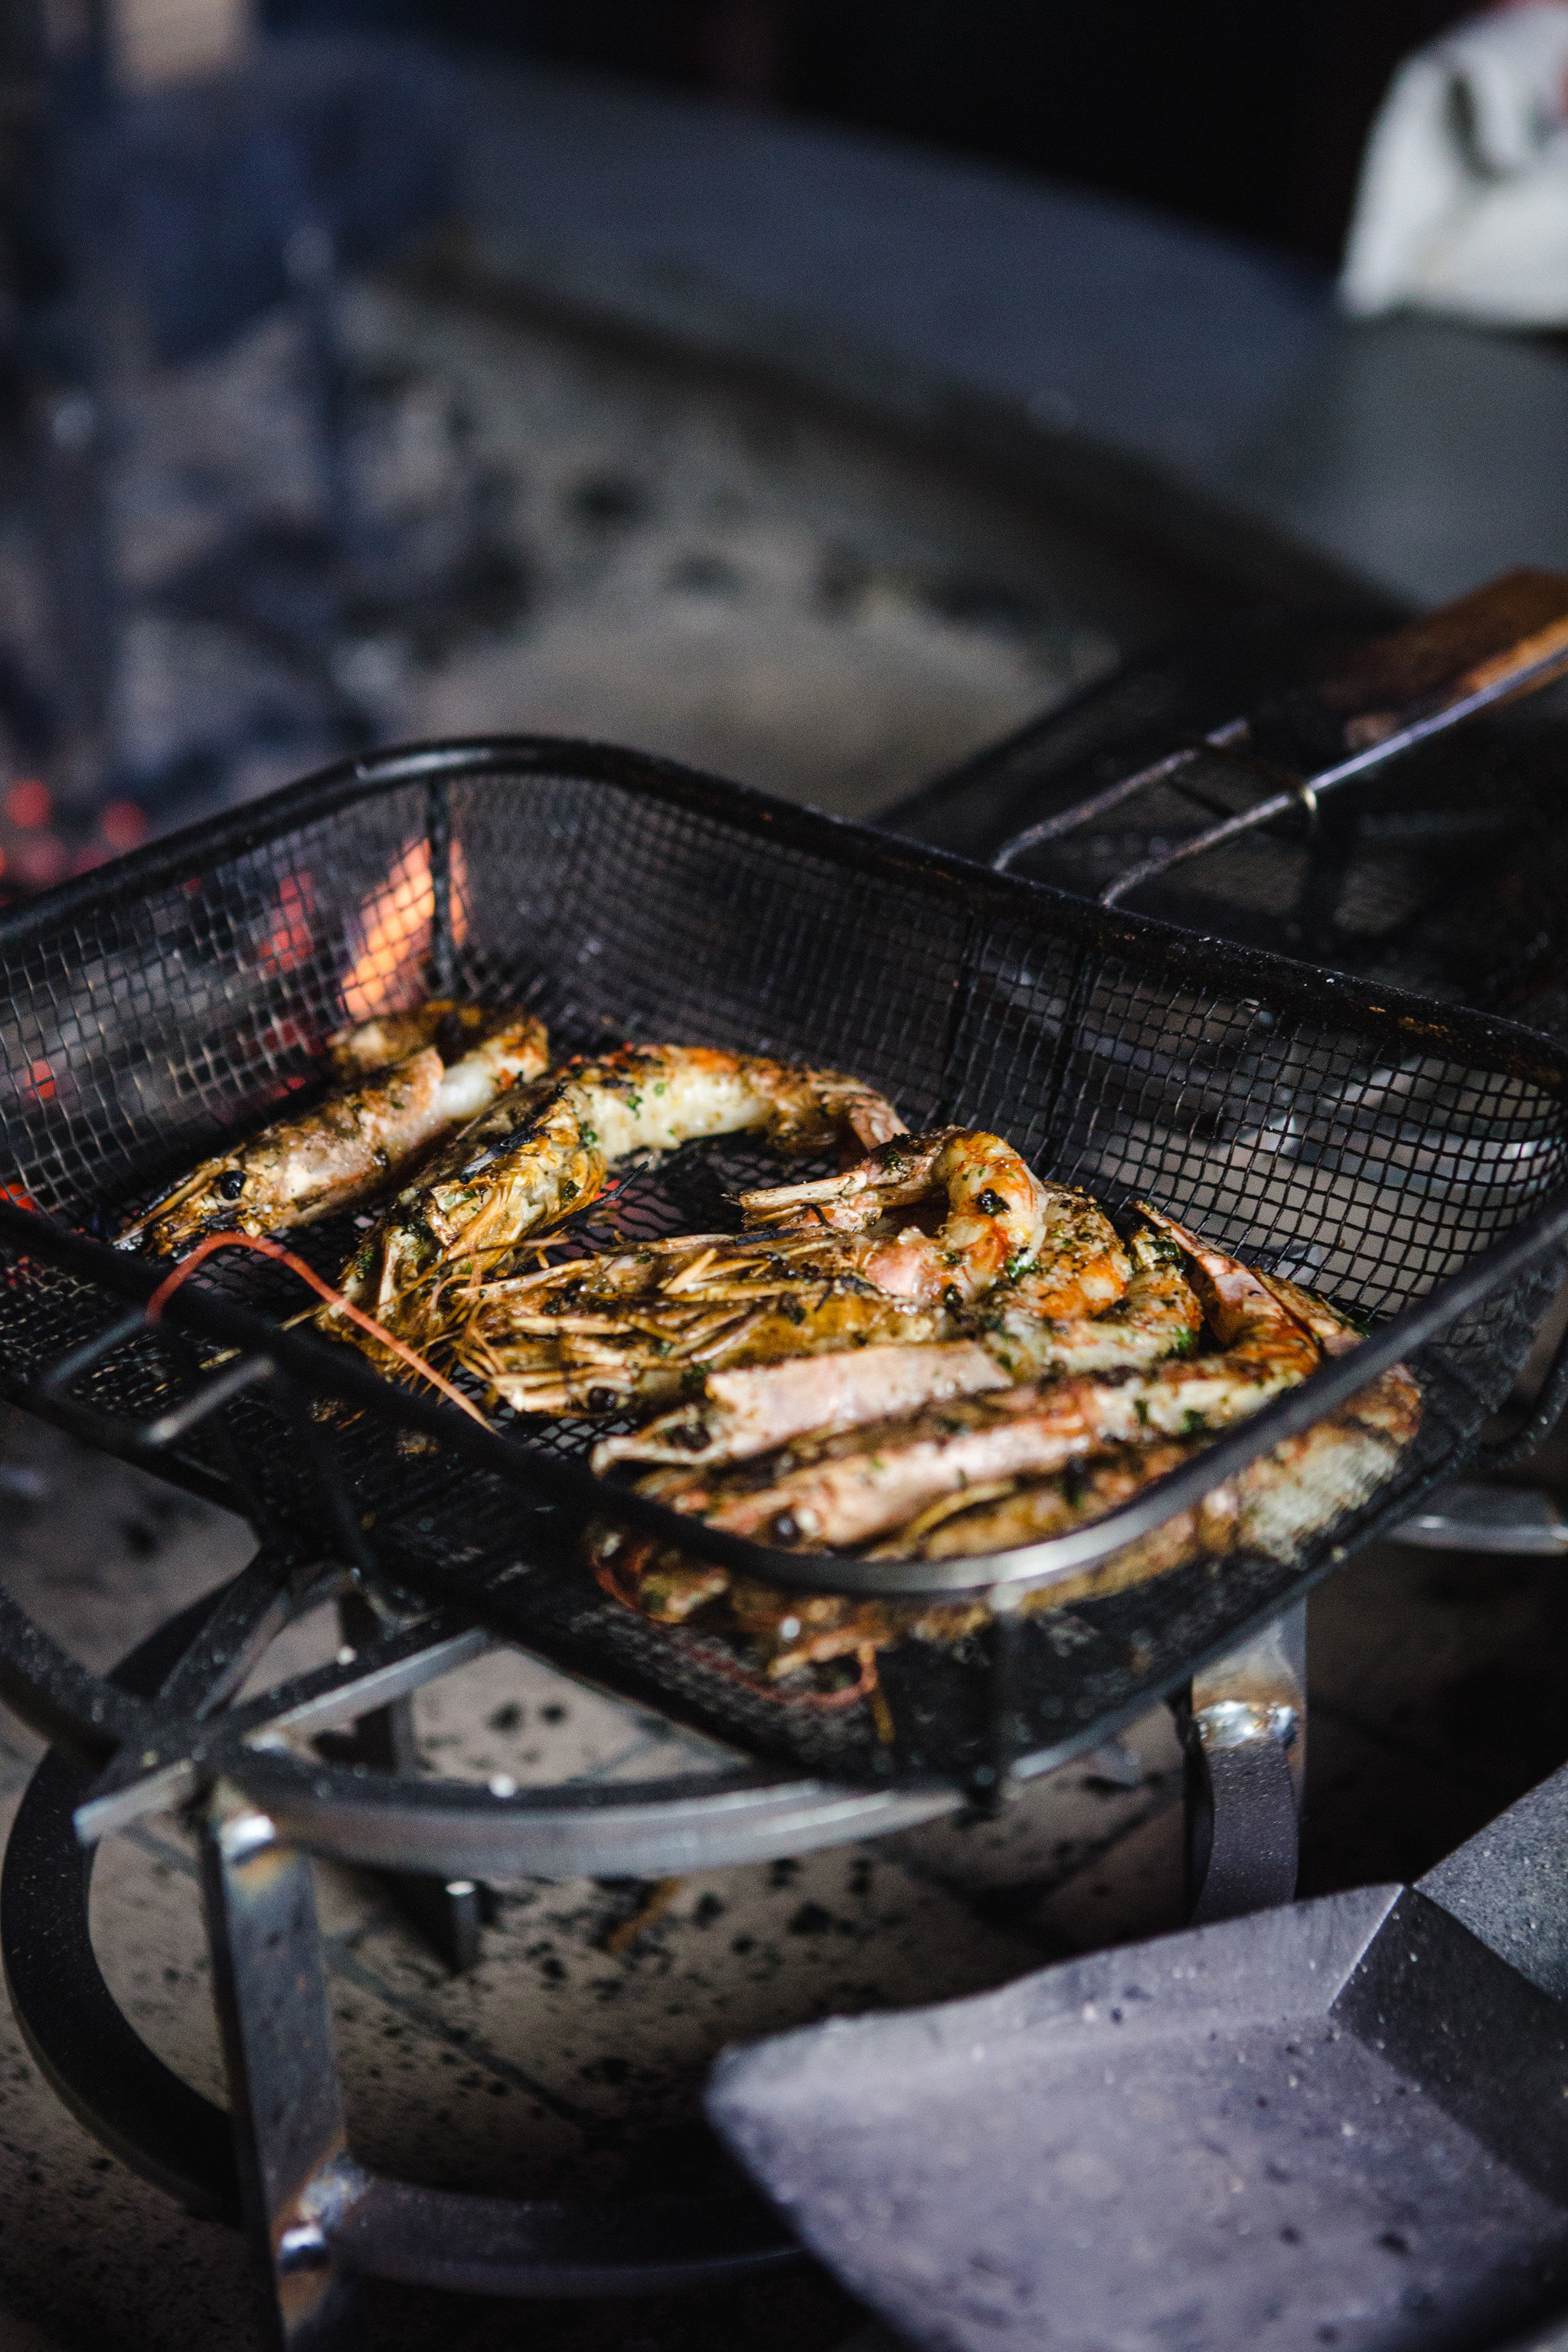 Food + Drink indoor grilling barbecue grill outdoor grill barbecue metal food grillades cooking pan frying pan dish cuisine cookware and bakeware animal source foods meat roasting rack grilled food recipe cooked grill kitchen appliance stove